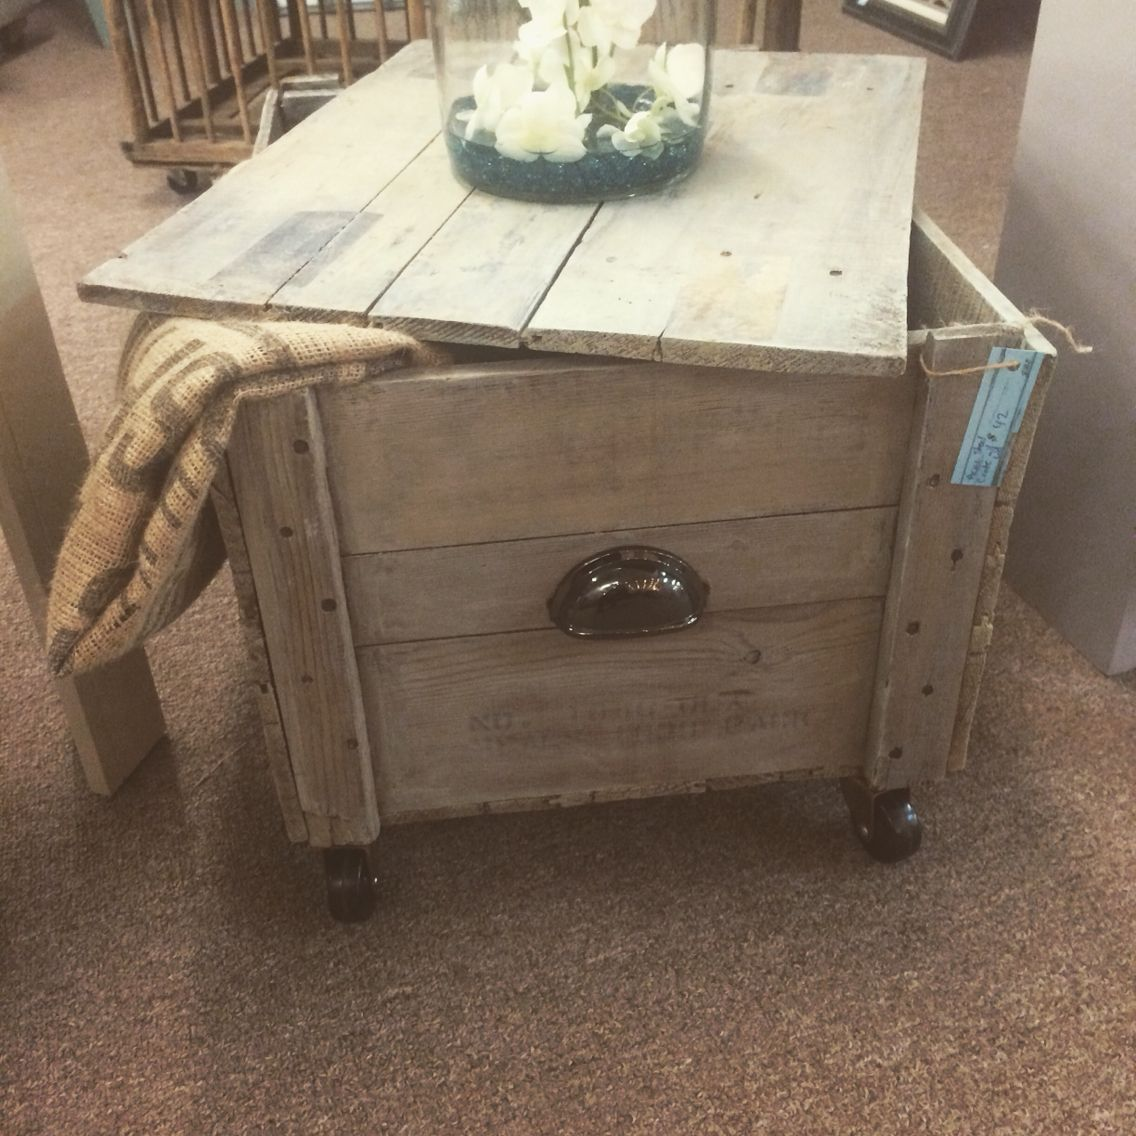 Acme Steel Co Wooden Crate Cart. Driftwood stained, casters and cup handle added.